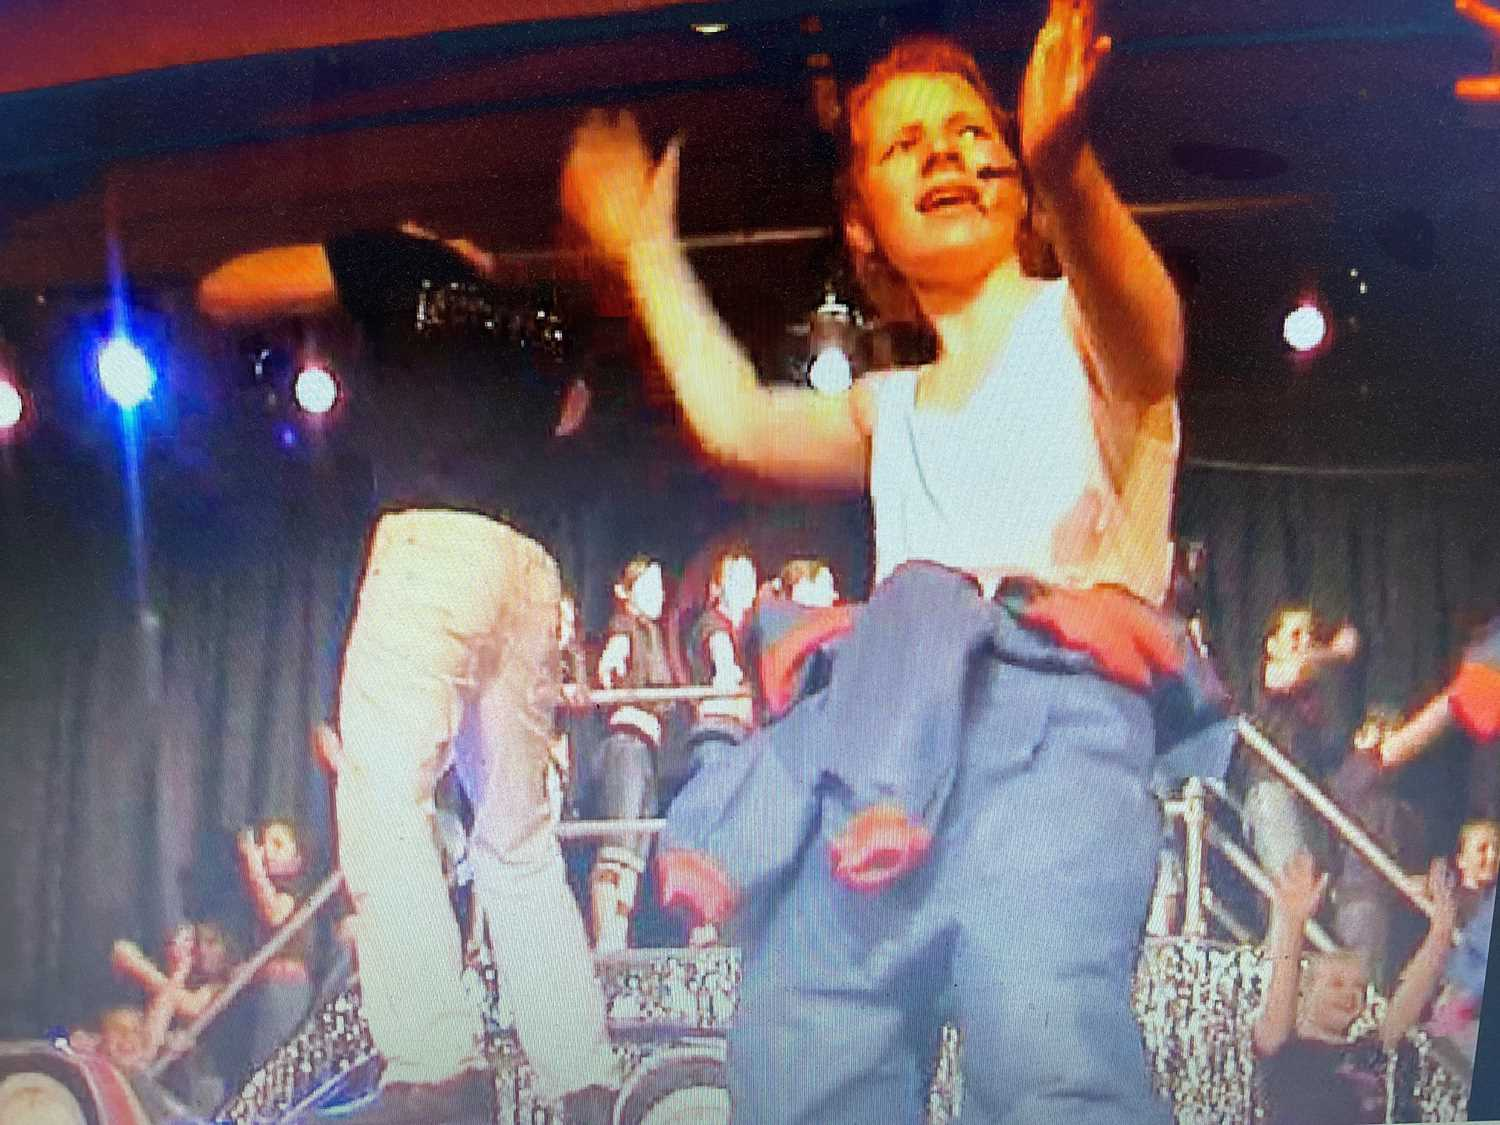 DVD FEATURING ED SHEERAN'S PERFORMANCE IN GREASE SCHOOL MUSICAL. - Image 2 of 4